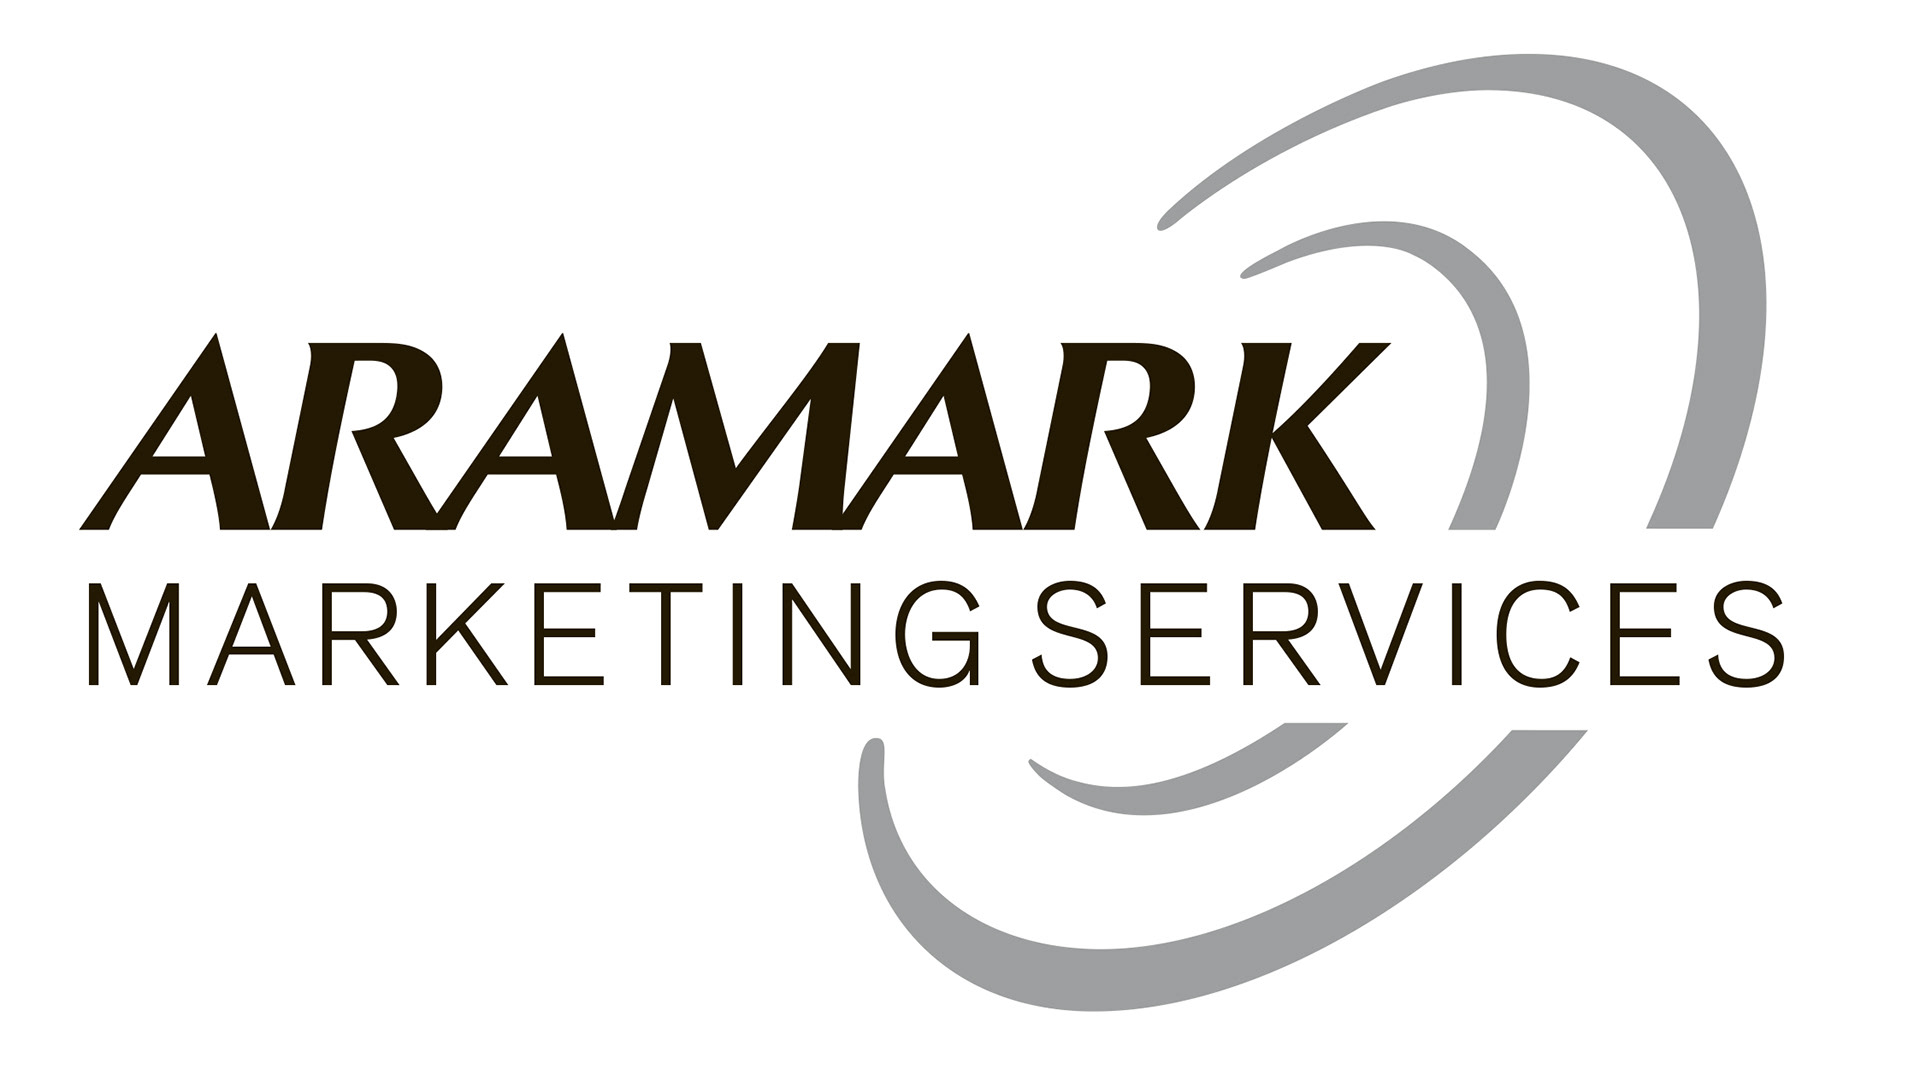 Barry Harmon | Graphic Design - Aramark Marketing Services Logo on home depot application form, apple store application form, ashley stewart application form, at&t application form, safeway application form, 24 hour fitness application form, google application form, bank of america application form, adp application form, target application form, hmshost application form, chick-fil-a application form, sunrise senior living application form, autozone application form, pepsico application form, american eagle outfitters application form, walmart application form, barnes & noble application form, comcast application form, nordstrom application form,